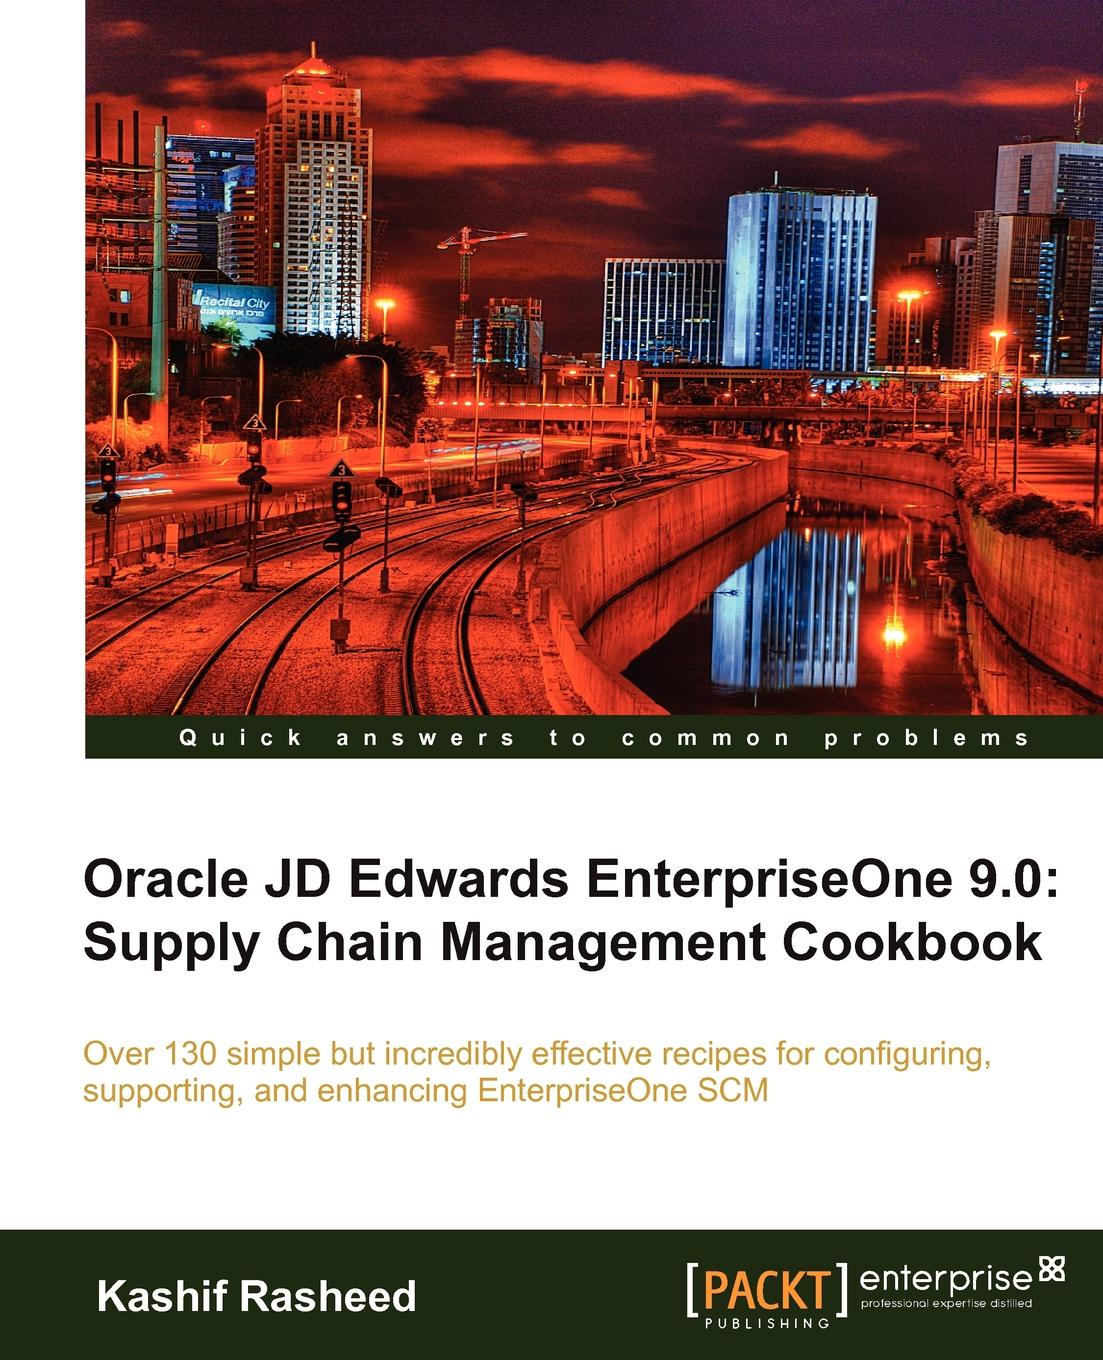 K. Rasheed, Kashif Rasheed Oracle Jd Edwards Enterpriseone 9.0. Supply Chain Management Cookbook jd коллекция светло синий 34